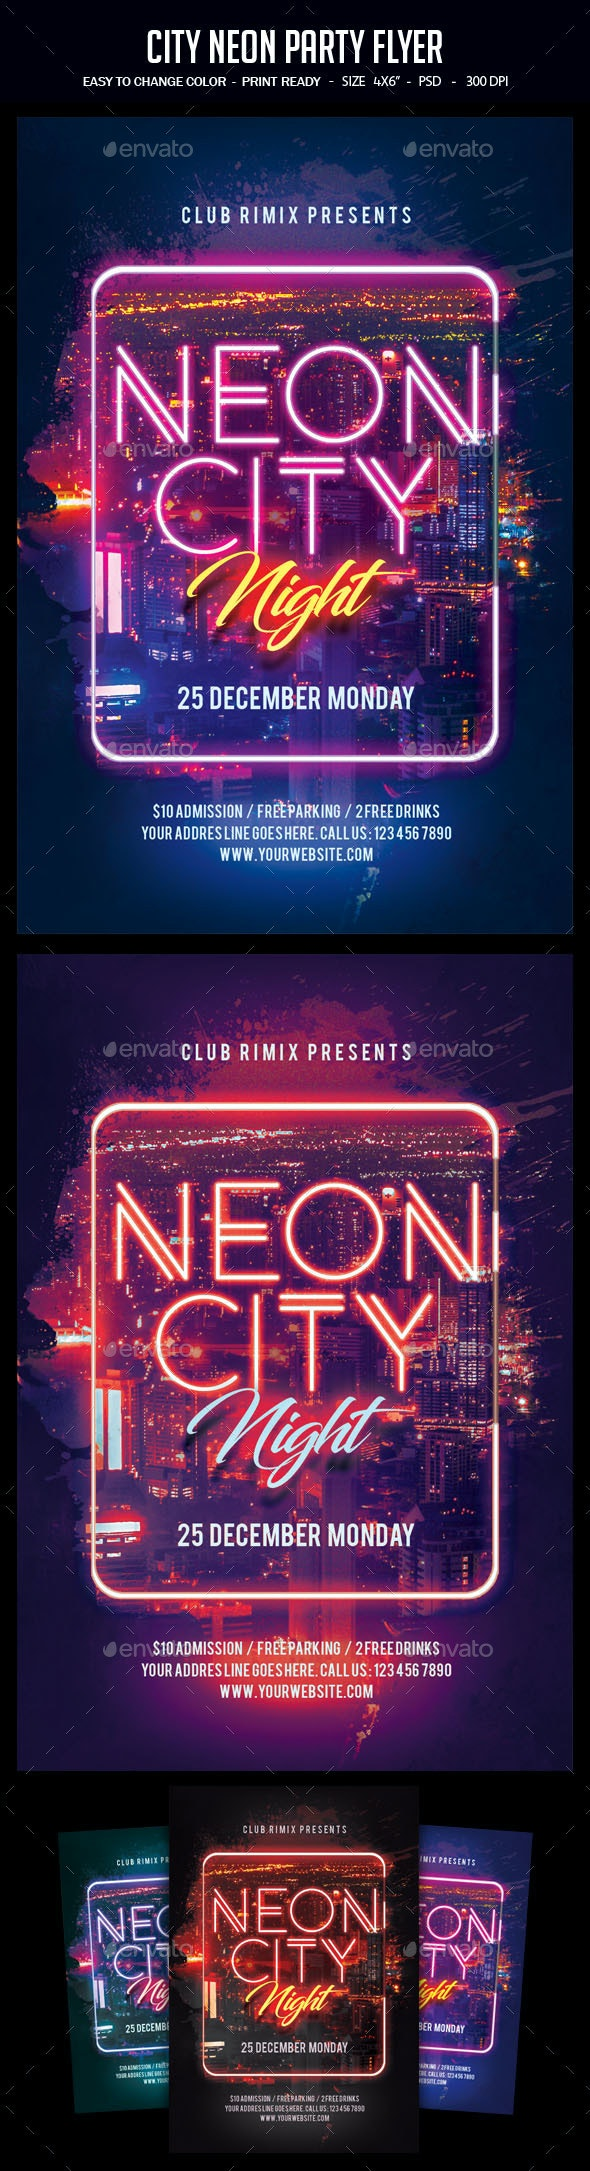 City Neon Party Flyer - Clubs & Parties Events